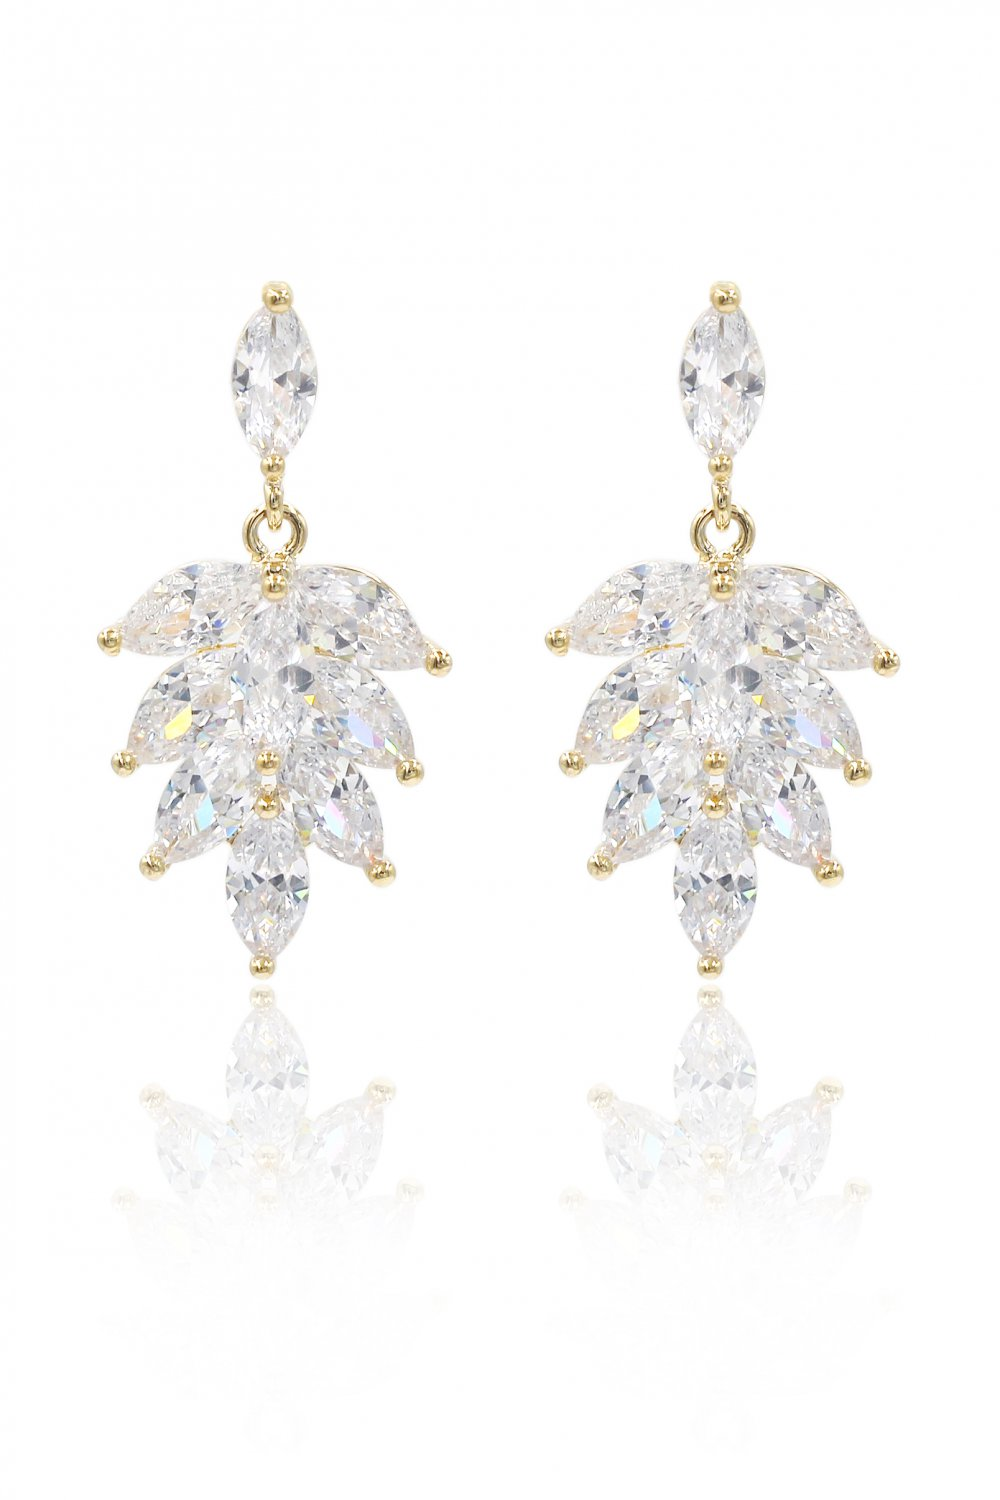 Elegant temperament crystal gold earrings